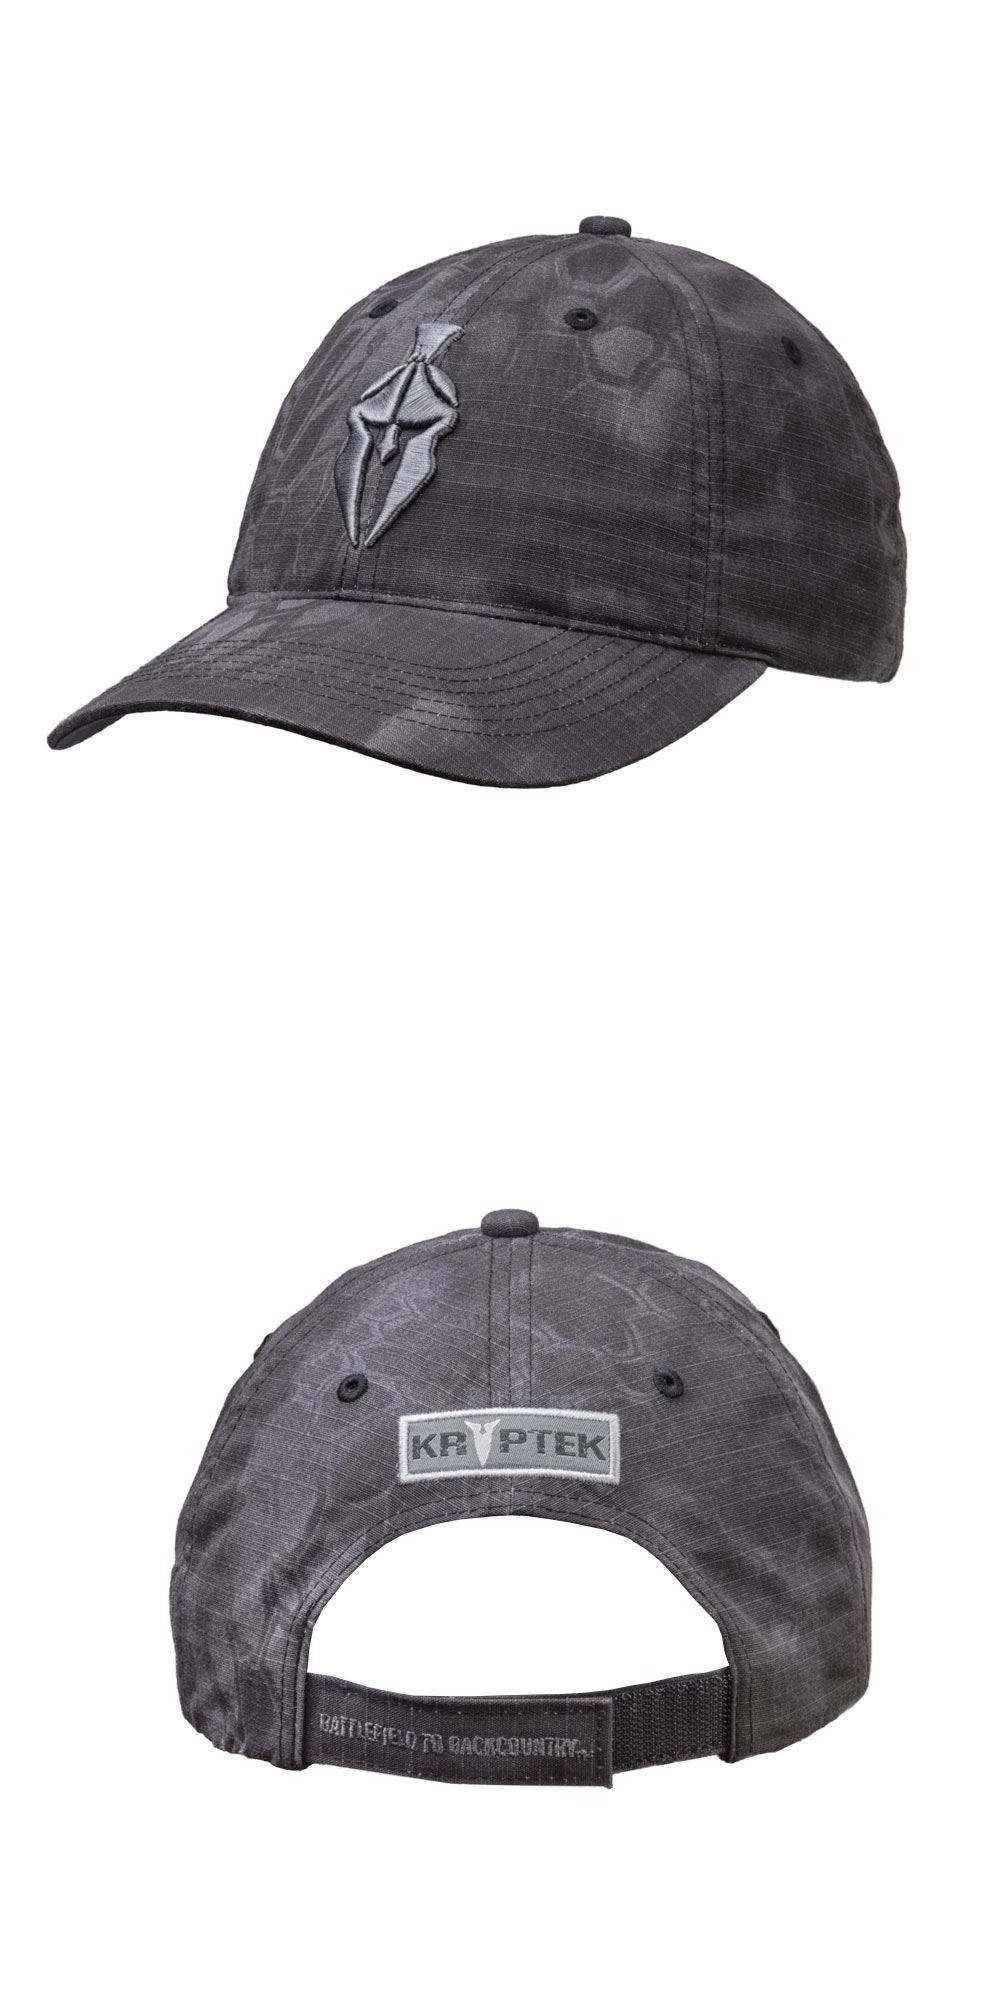 3461db87ac601 Clothing Shoes and Accessories 36239  Kryptek Spartan Logo Hat Cap Typhon  Black